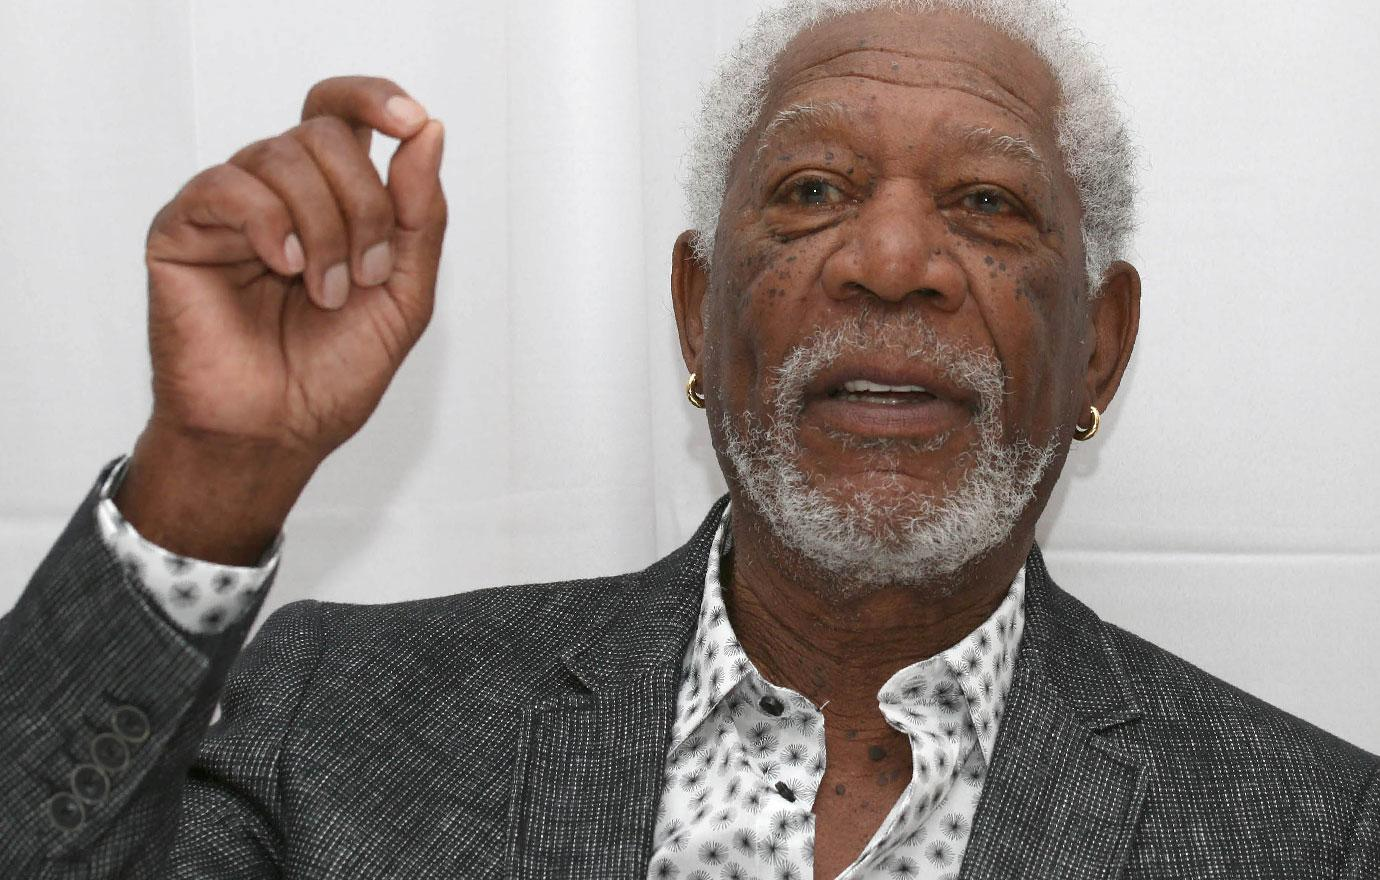 Morgan Freeman Slams Sex Harassment Claims In New Statement